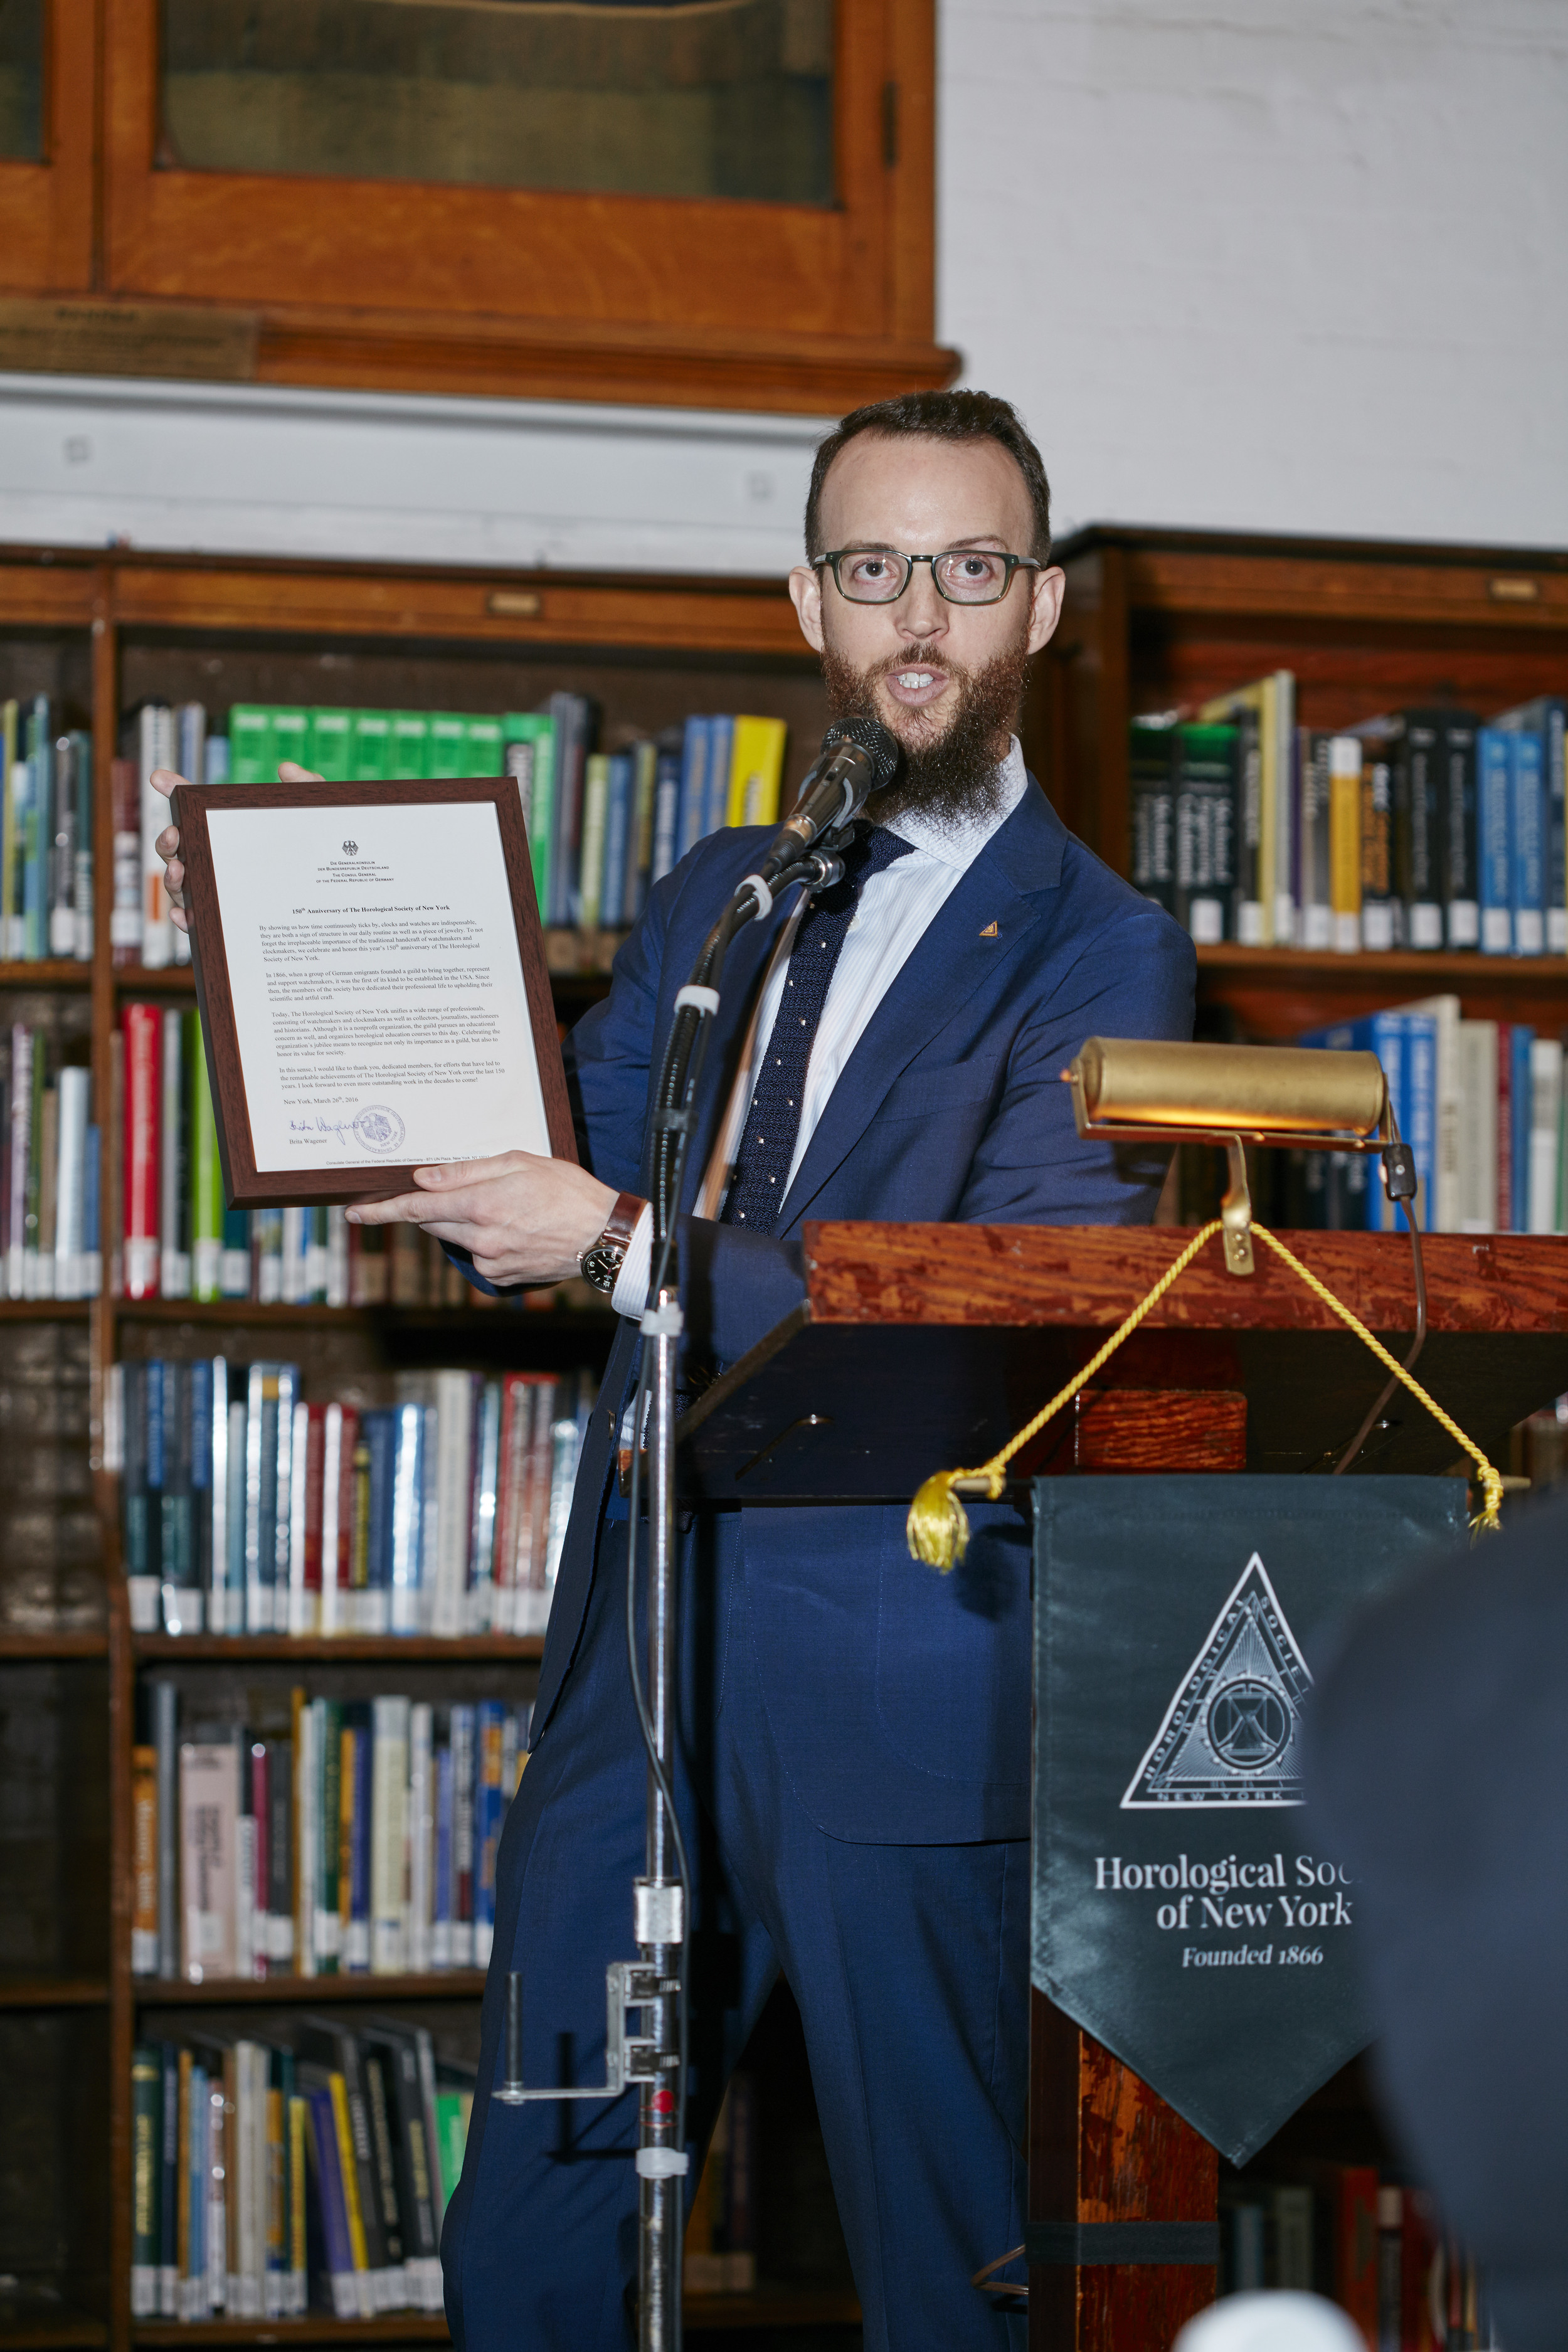 Nicholas Manousos, Vice President of HSNY, presenting a proclamation from the German government